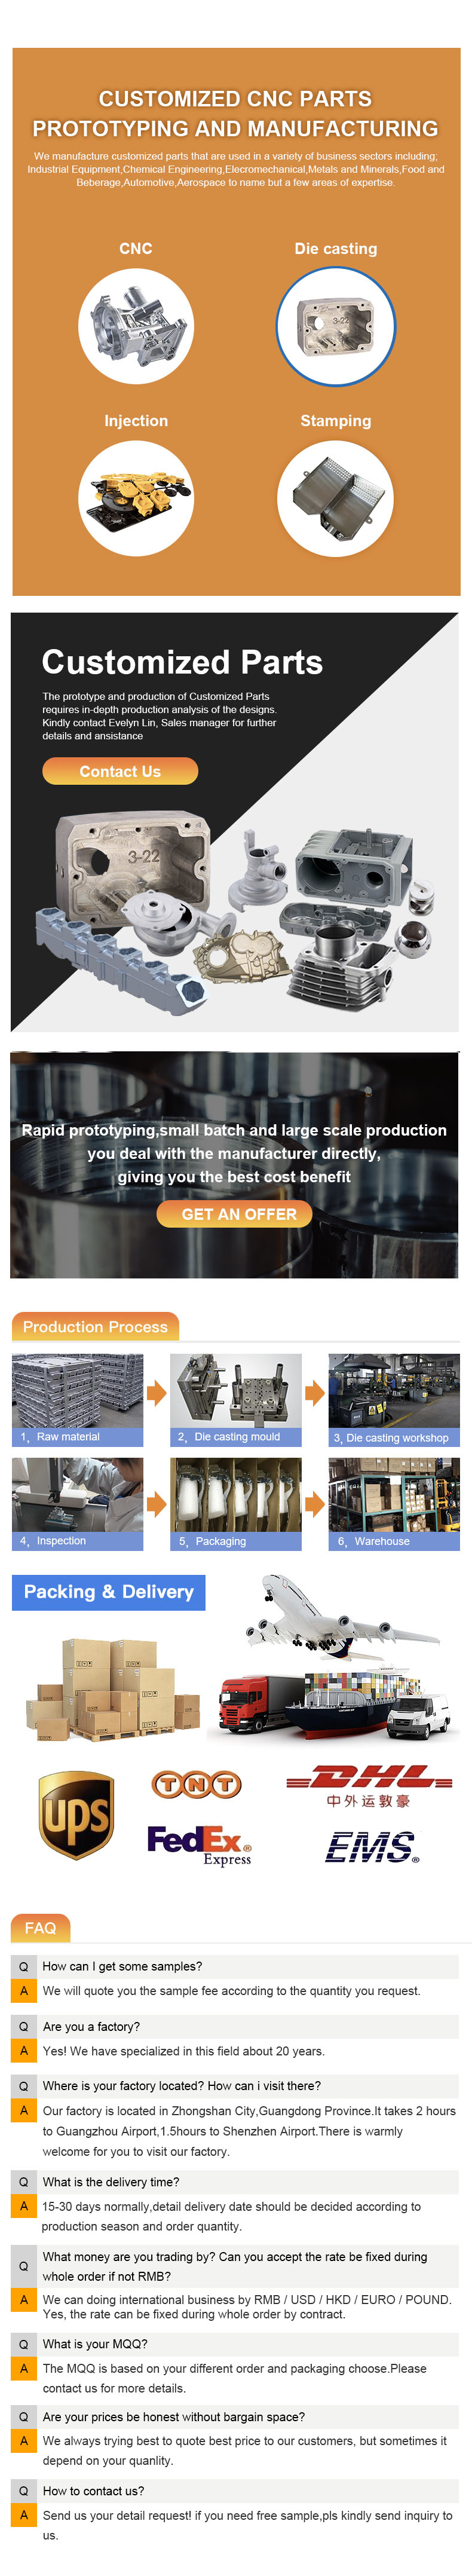 stainless steel die casting,CNC MACHINING PARTS,PRECISION CNC MACHINING PARTS,CNC ALUMINUM PARTS,Machined Products,CNC Machined Products,BoYang Hardware Products